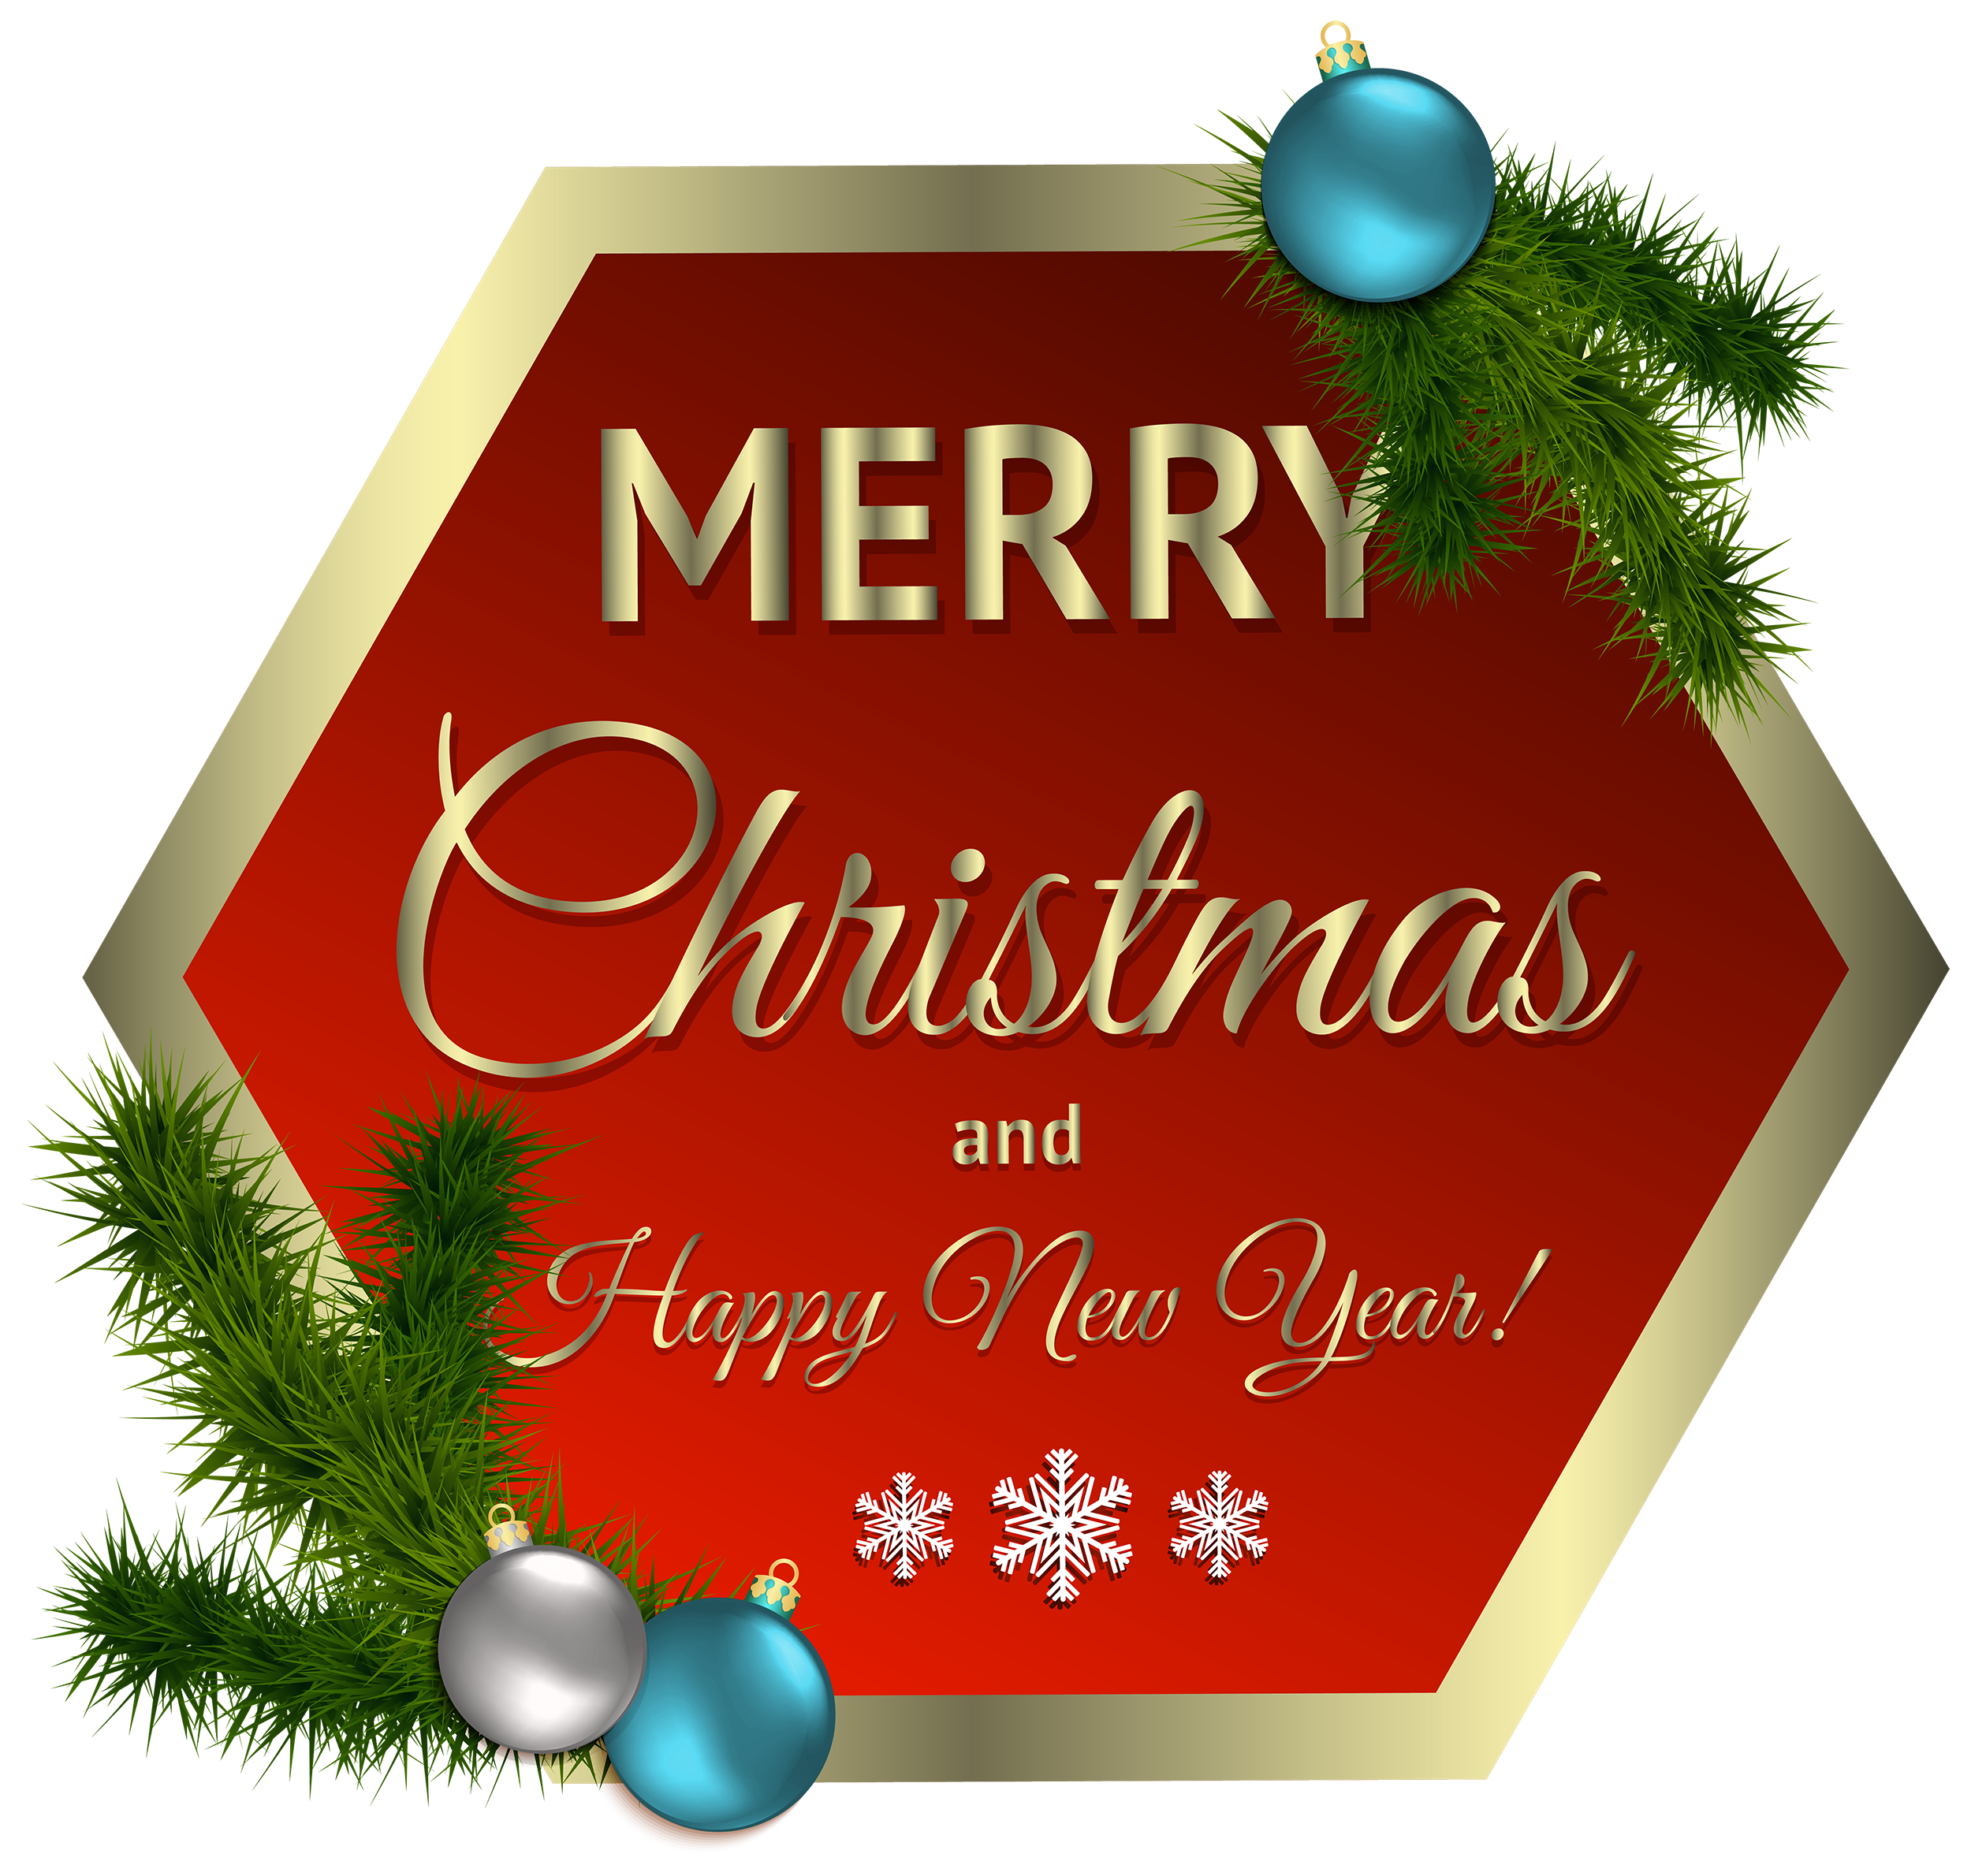 Tag clipart merry christmas. Red decor with ornaments